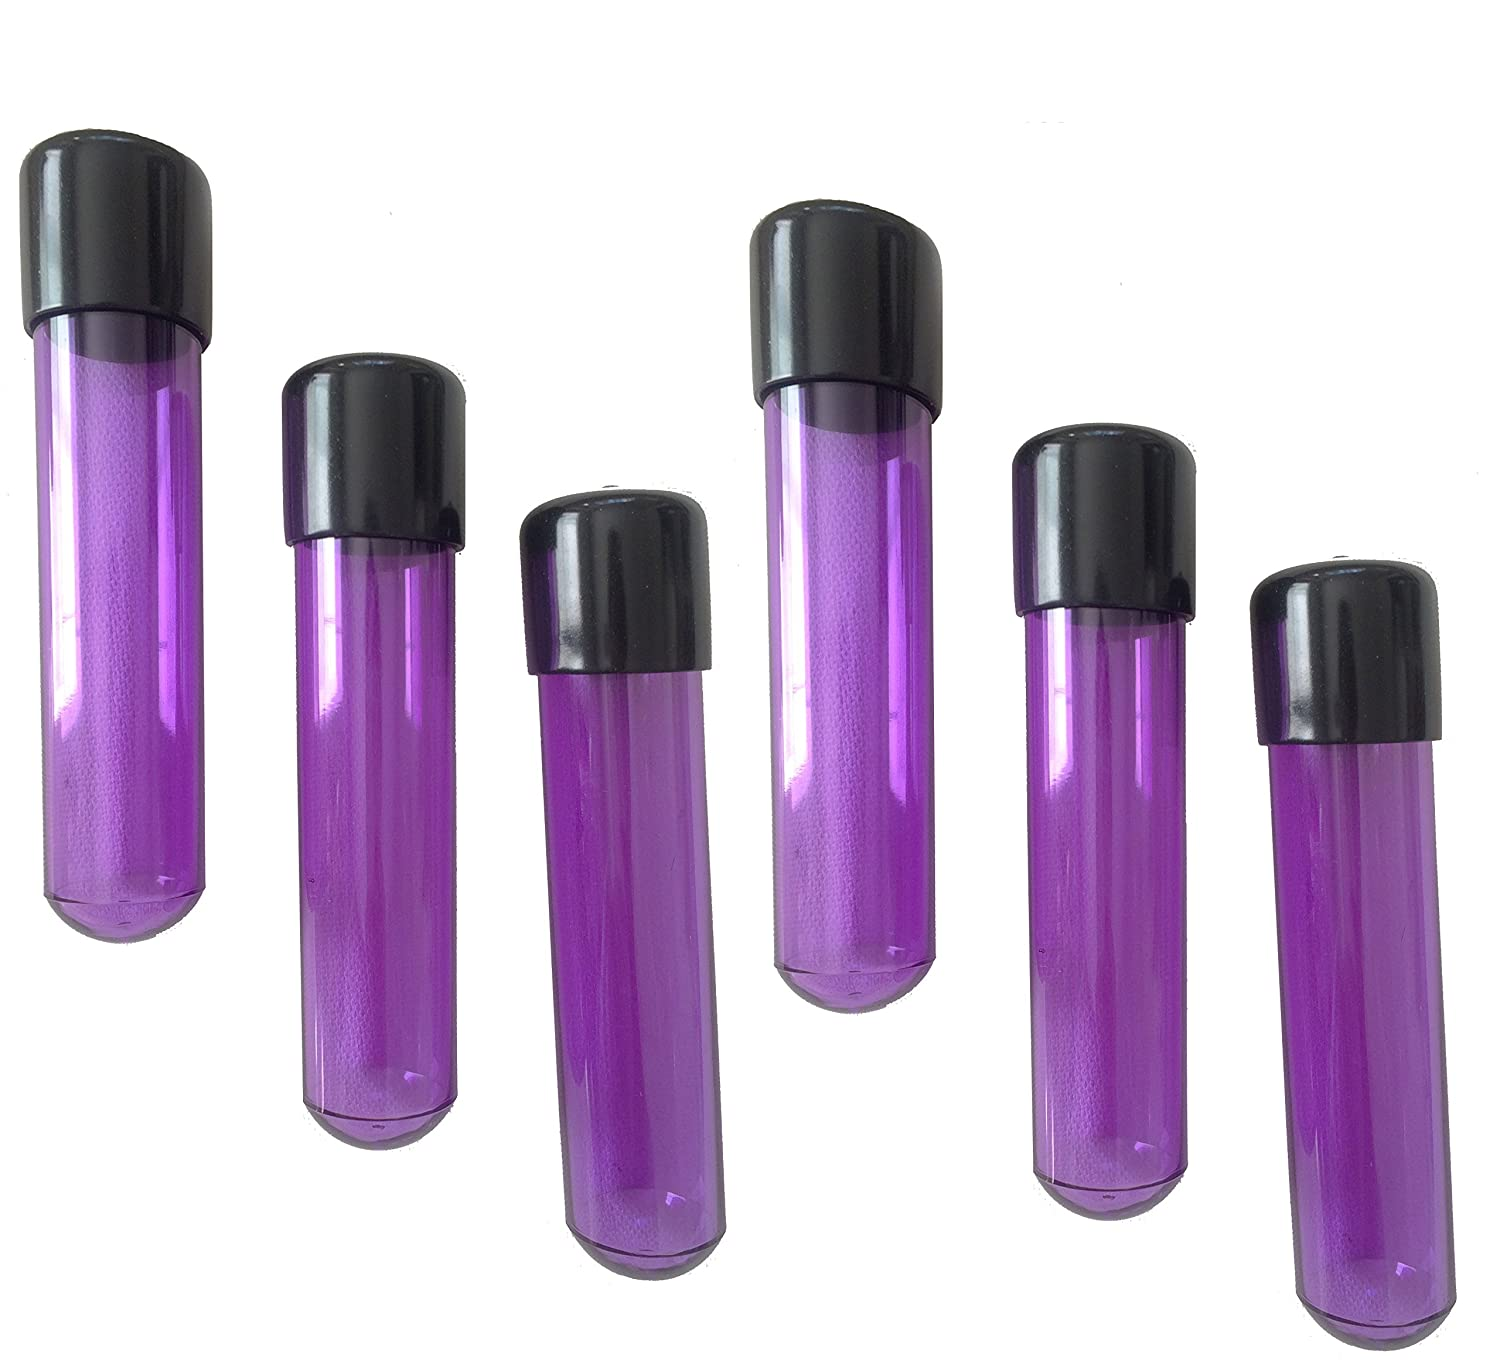 44 mL 12 Dram 6-Pack of Large 4.75 inch tall 1.5 oz Purple Plastic Airtight Watertight Childproof Sample Storage Herb Spice Medical Specimen Vial Test Tube Container w// Black Caps